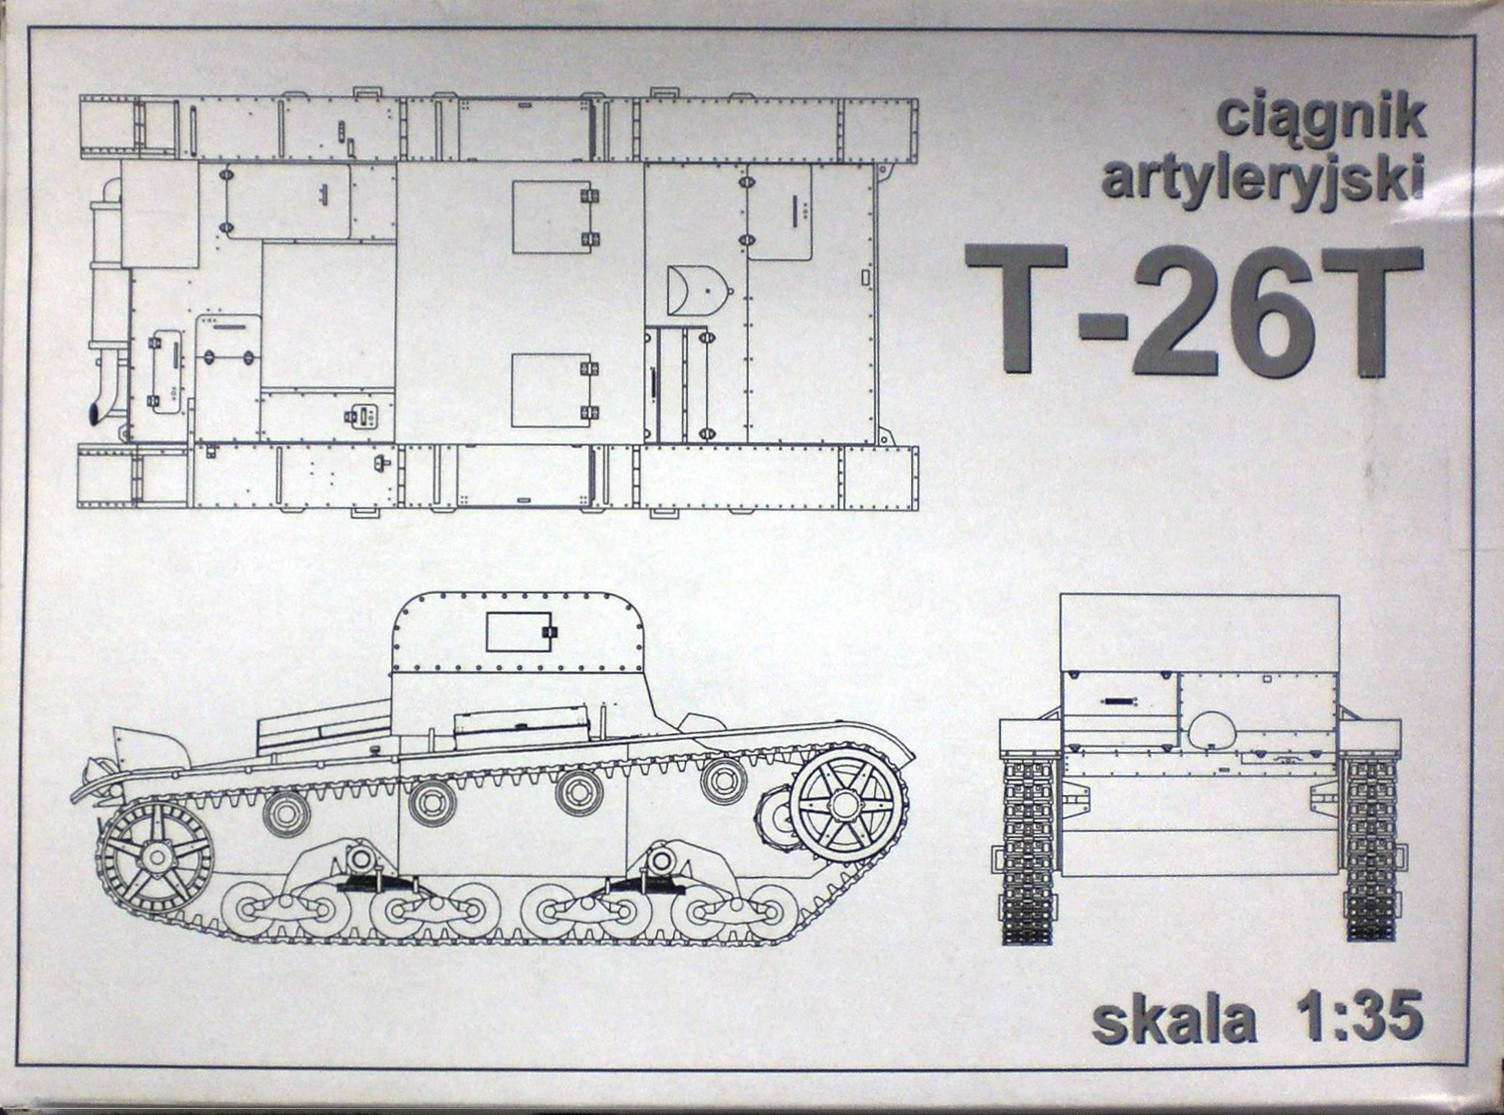 35018 Artillery Tractor T-26T Image